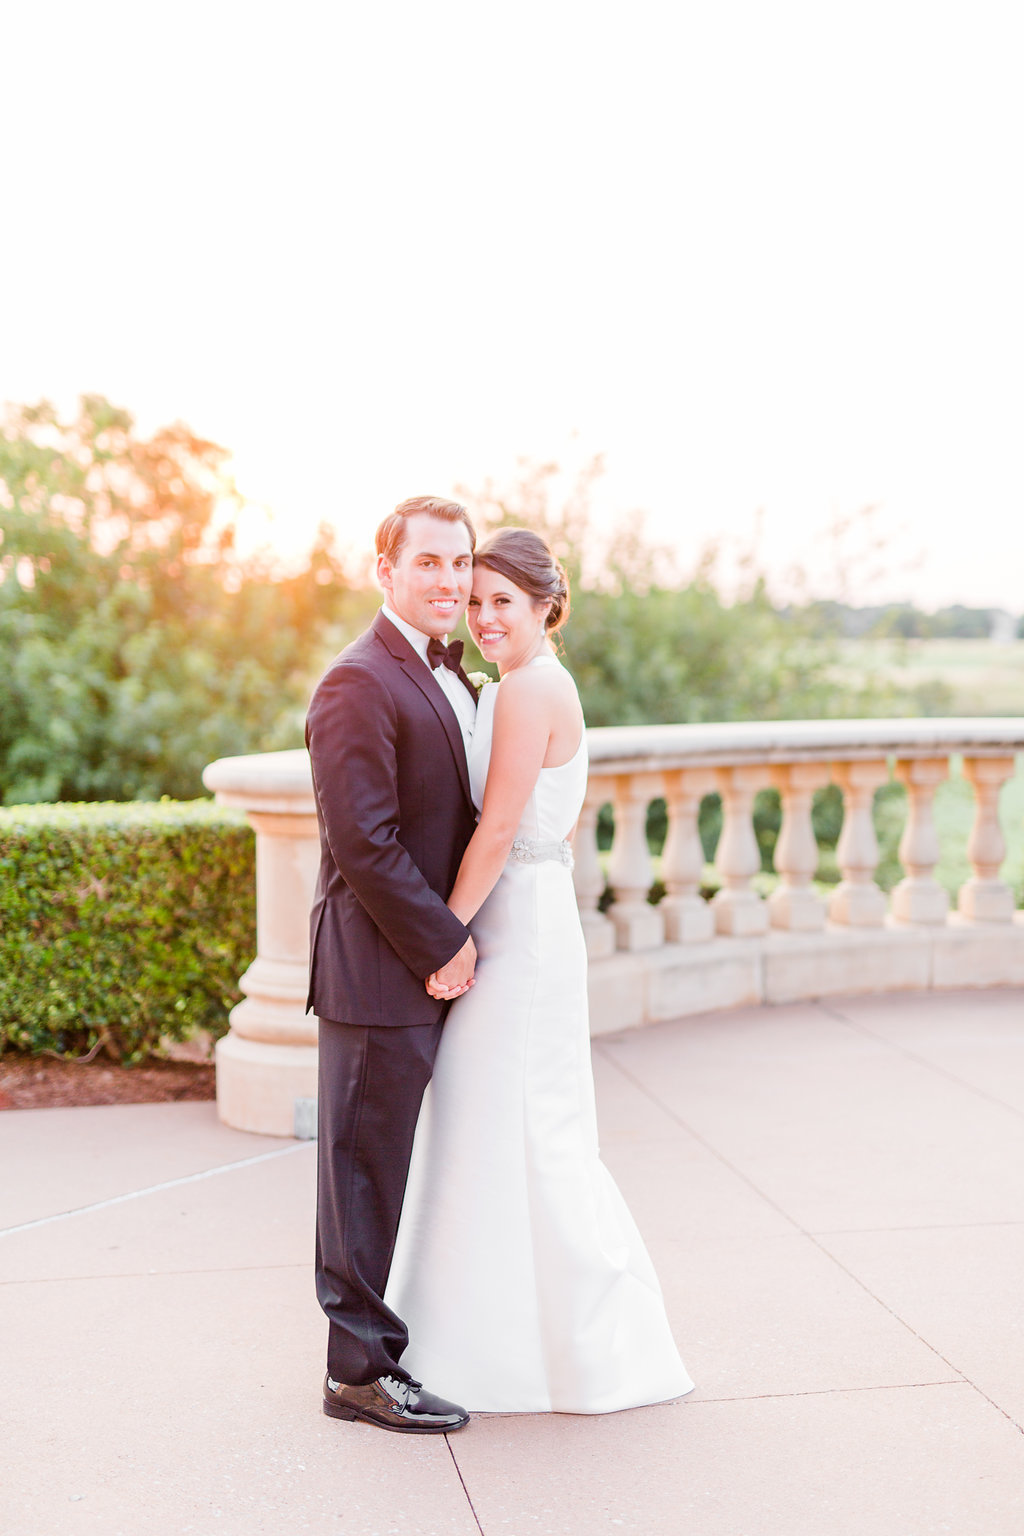 Gallardia-Oklahoma-City-Oklahoma-Wedding-Photographer-Holly-Felts-Photography-Photos-427